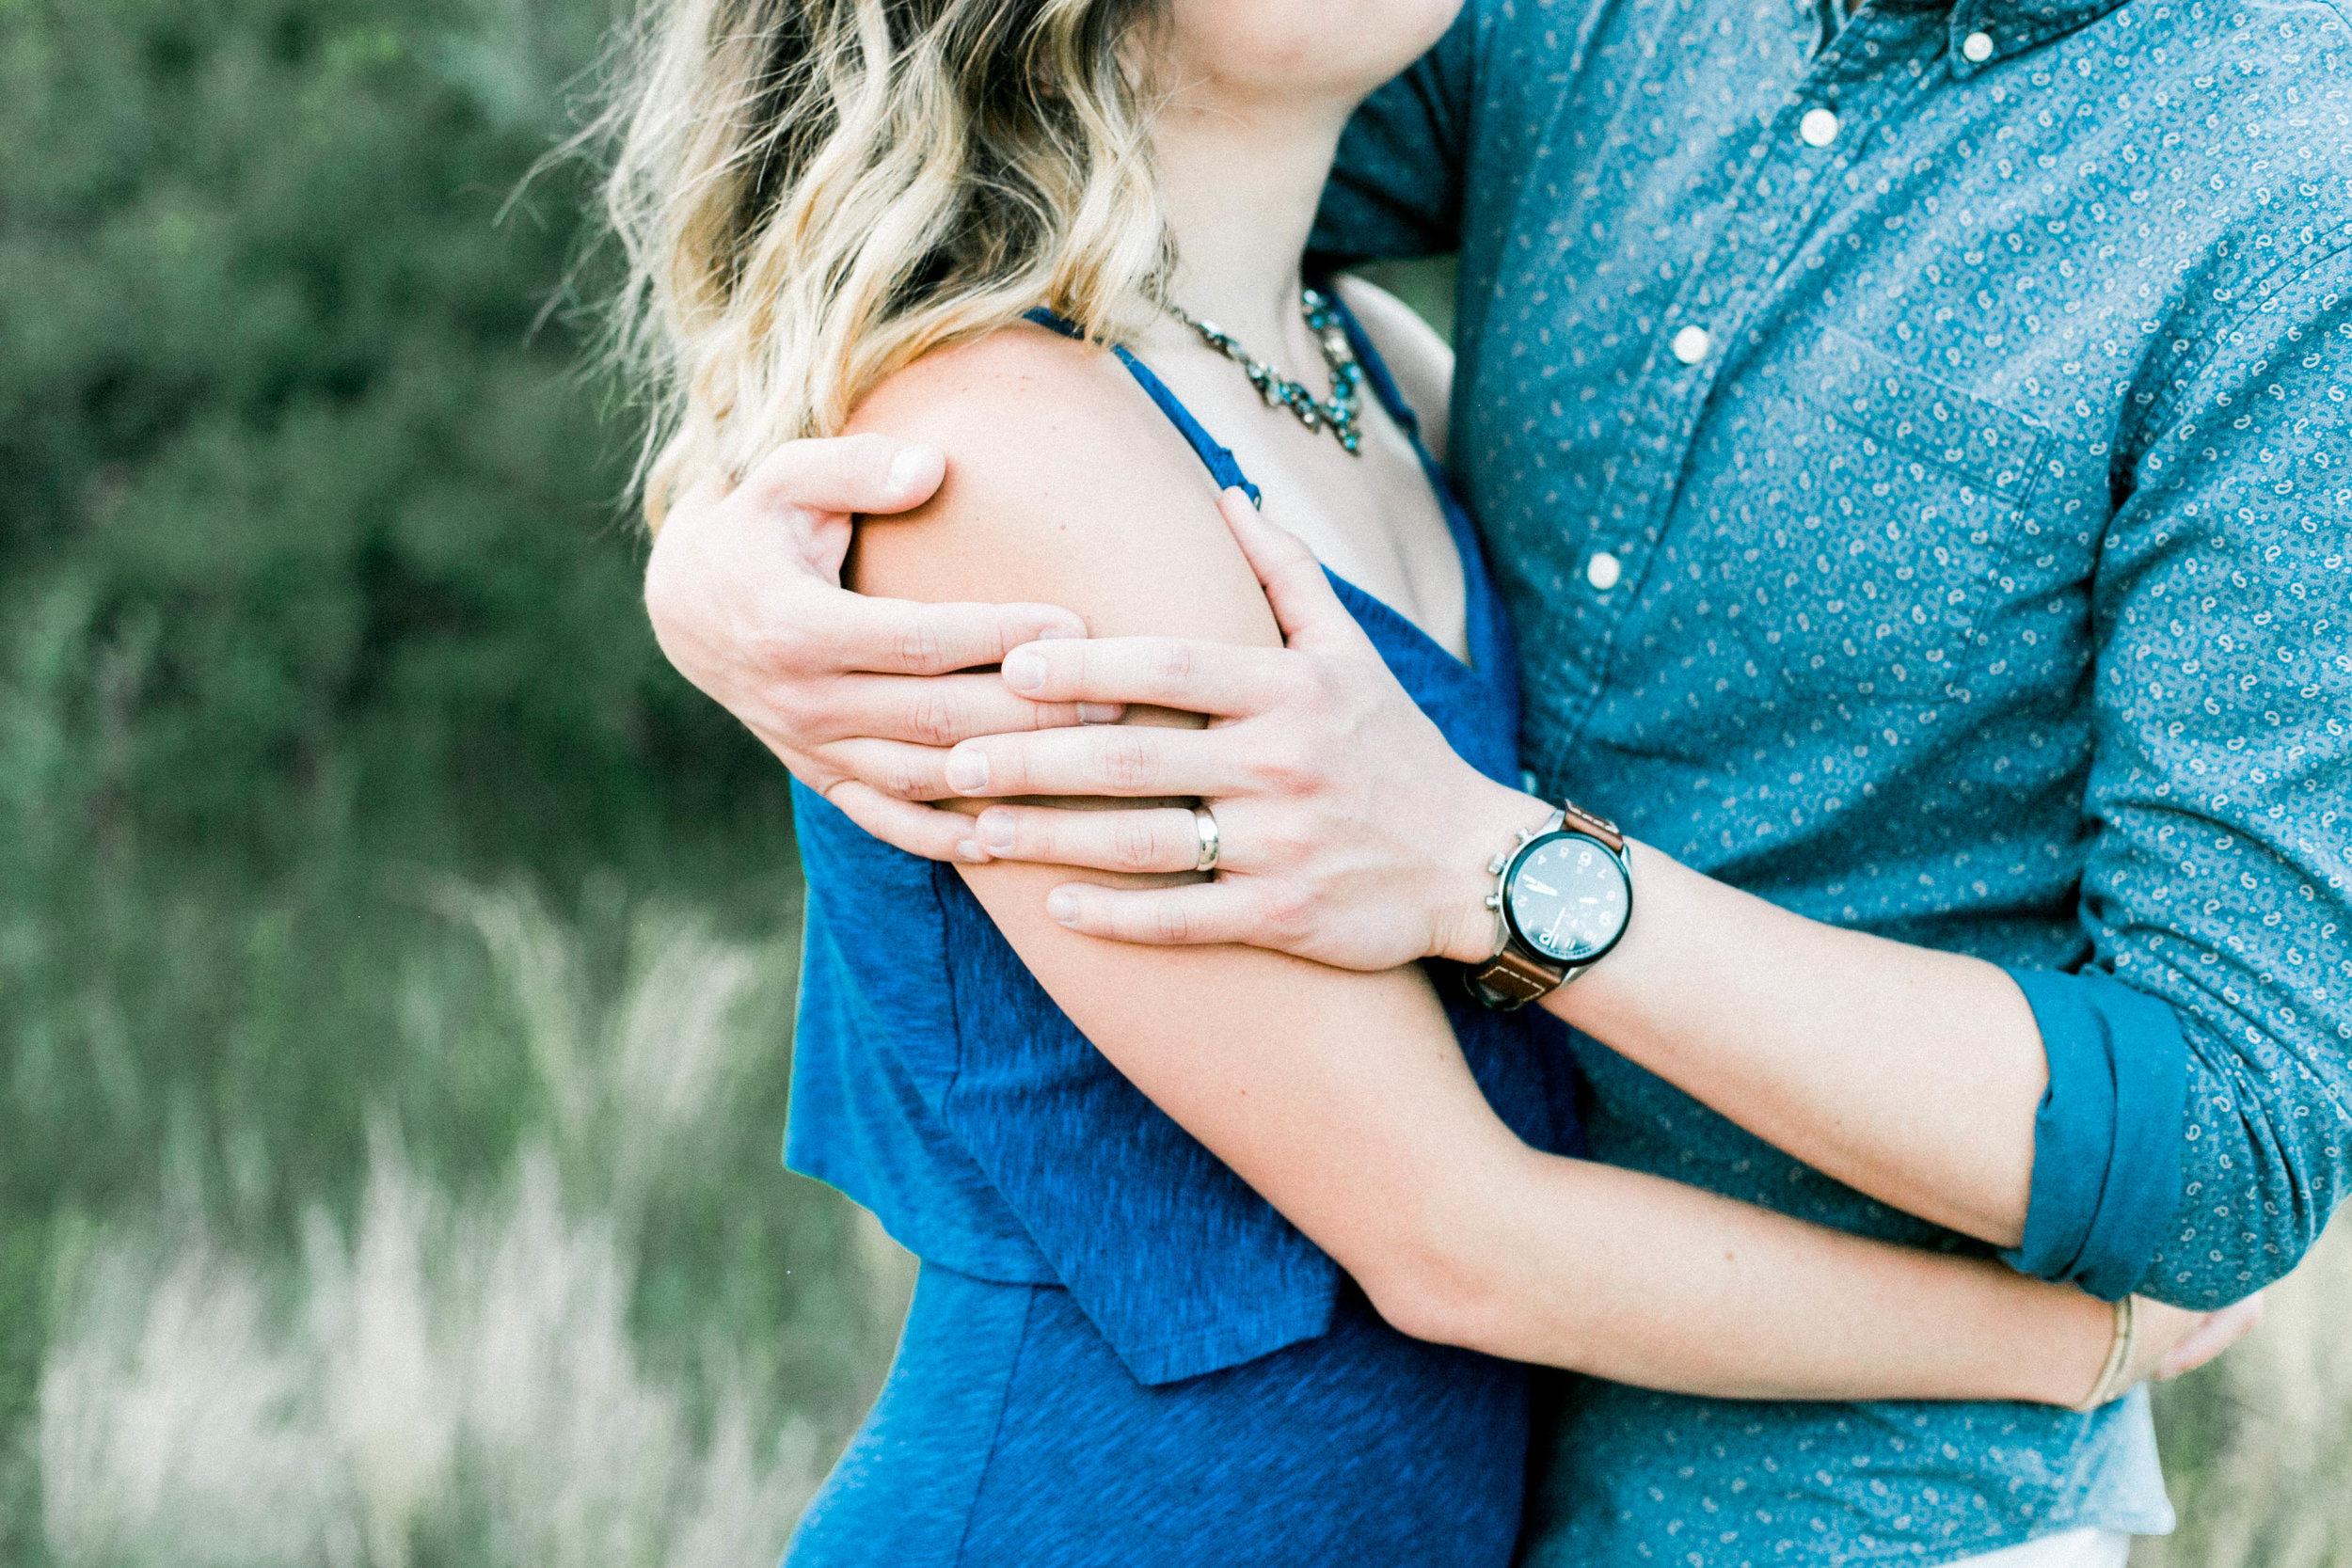 Colorado Springs Engagement Wedding Adventure Photographer - Erin and Jim 29.jpg